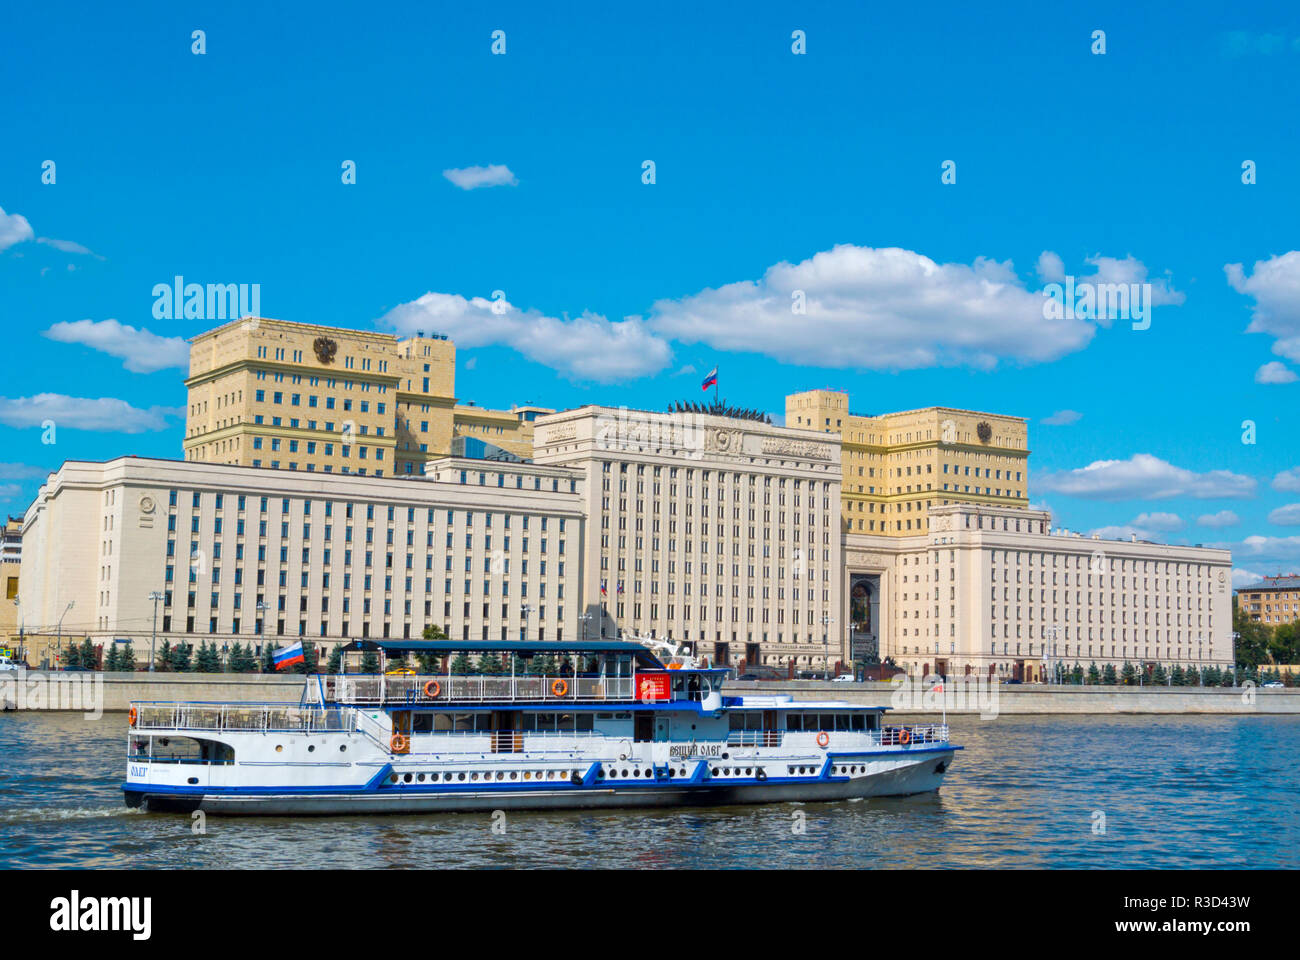 Sightseeing tour boat passing Ministry of Defence of the Russian Federation, Moscow, Russia - Stock Image